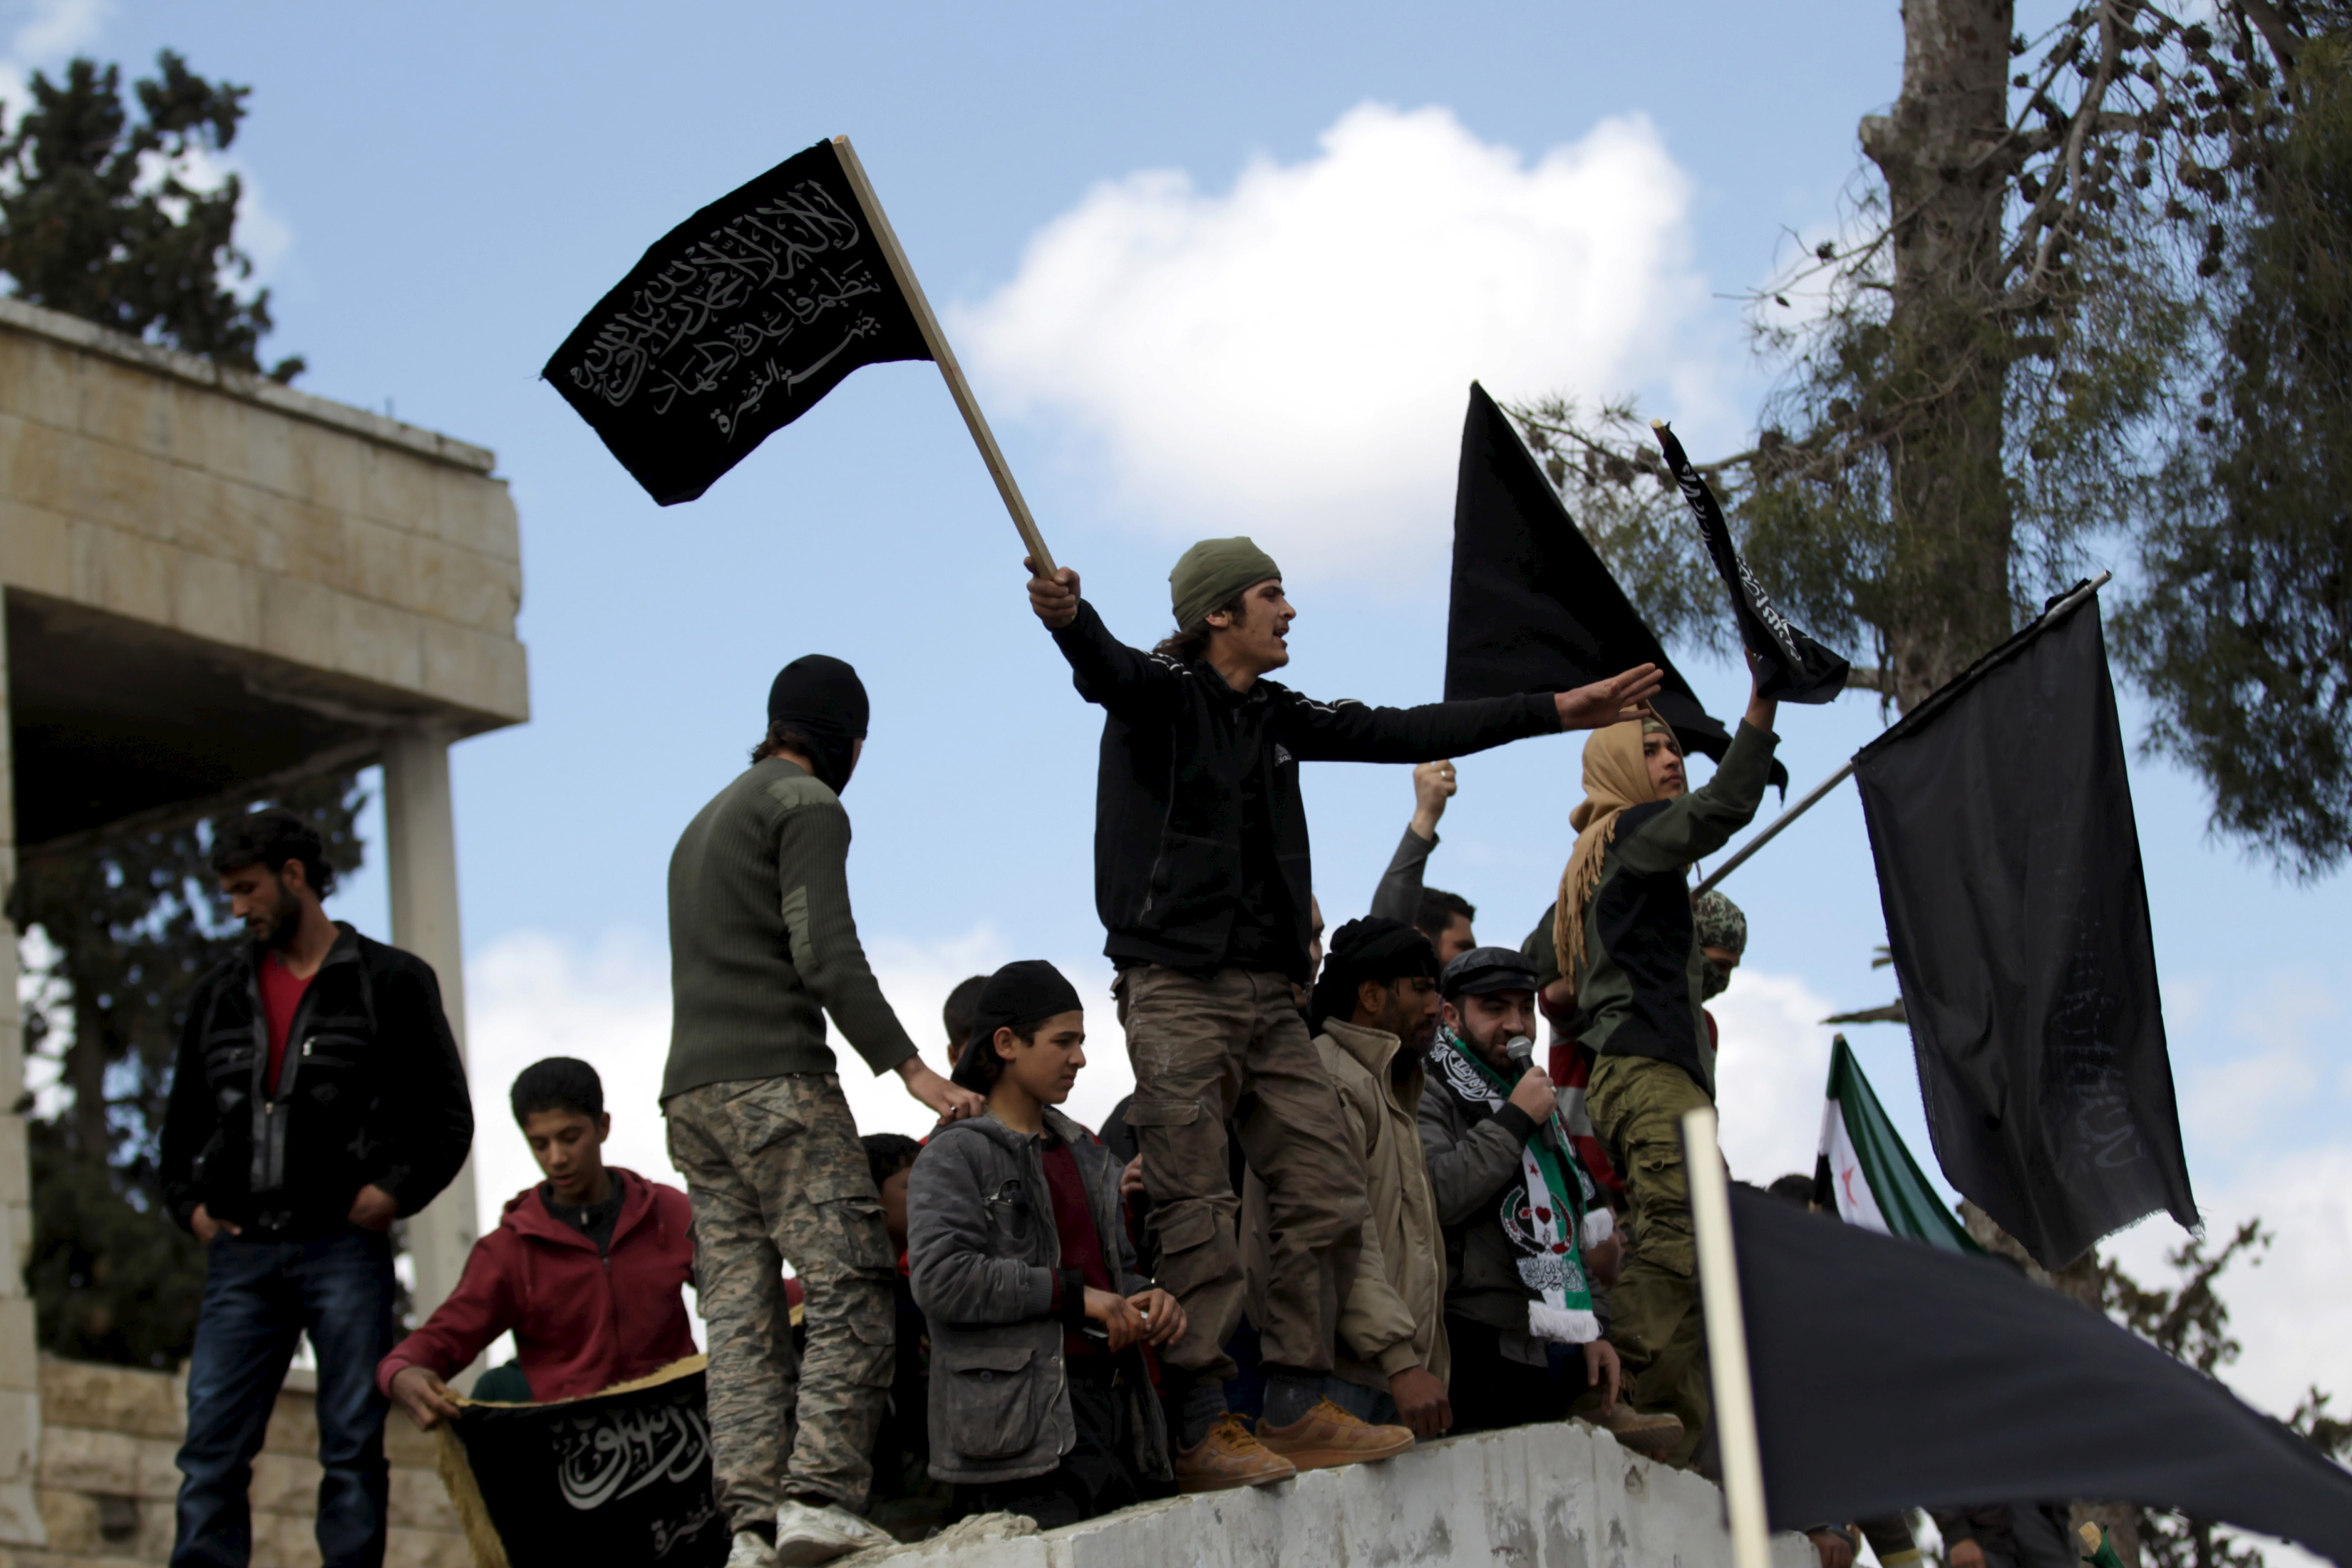 Protesters carry Nusra Front flags and shout slogans during an anti-government protest after Friday prayers in the town of Marat Numan in Idlib province, Syria, March 11, 2016. REUTERS/Khalil Ashawi - RTSAD3R